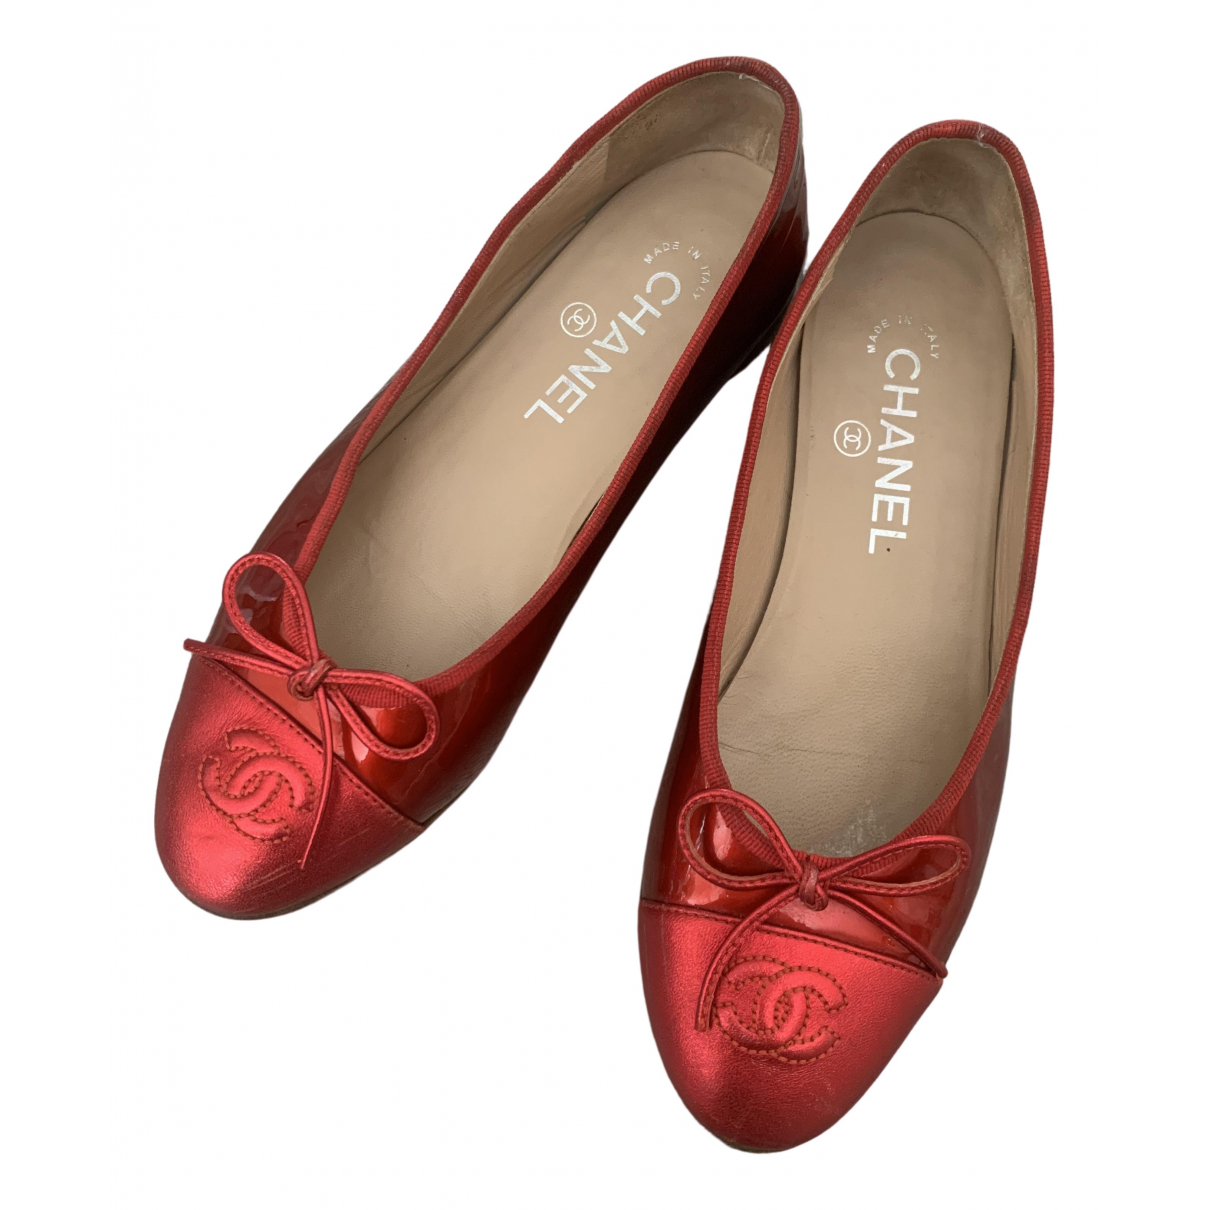 Chanel \N Red Patent leather Ballet flats for Women 36 EU